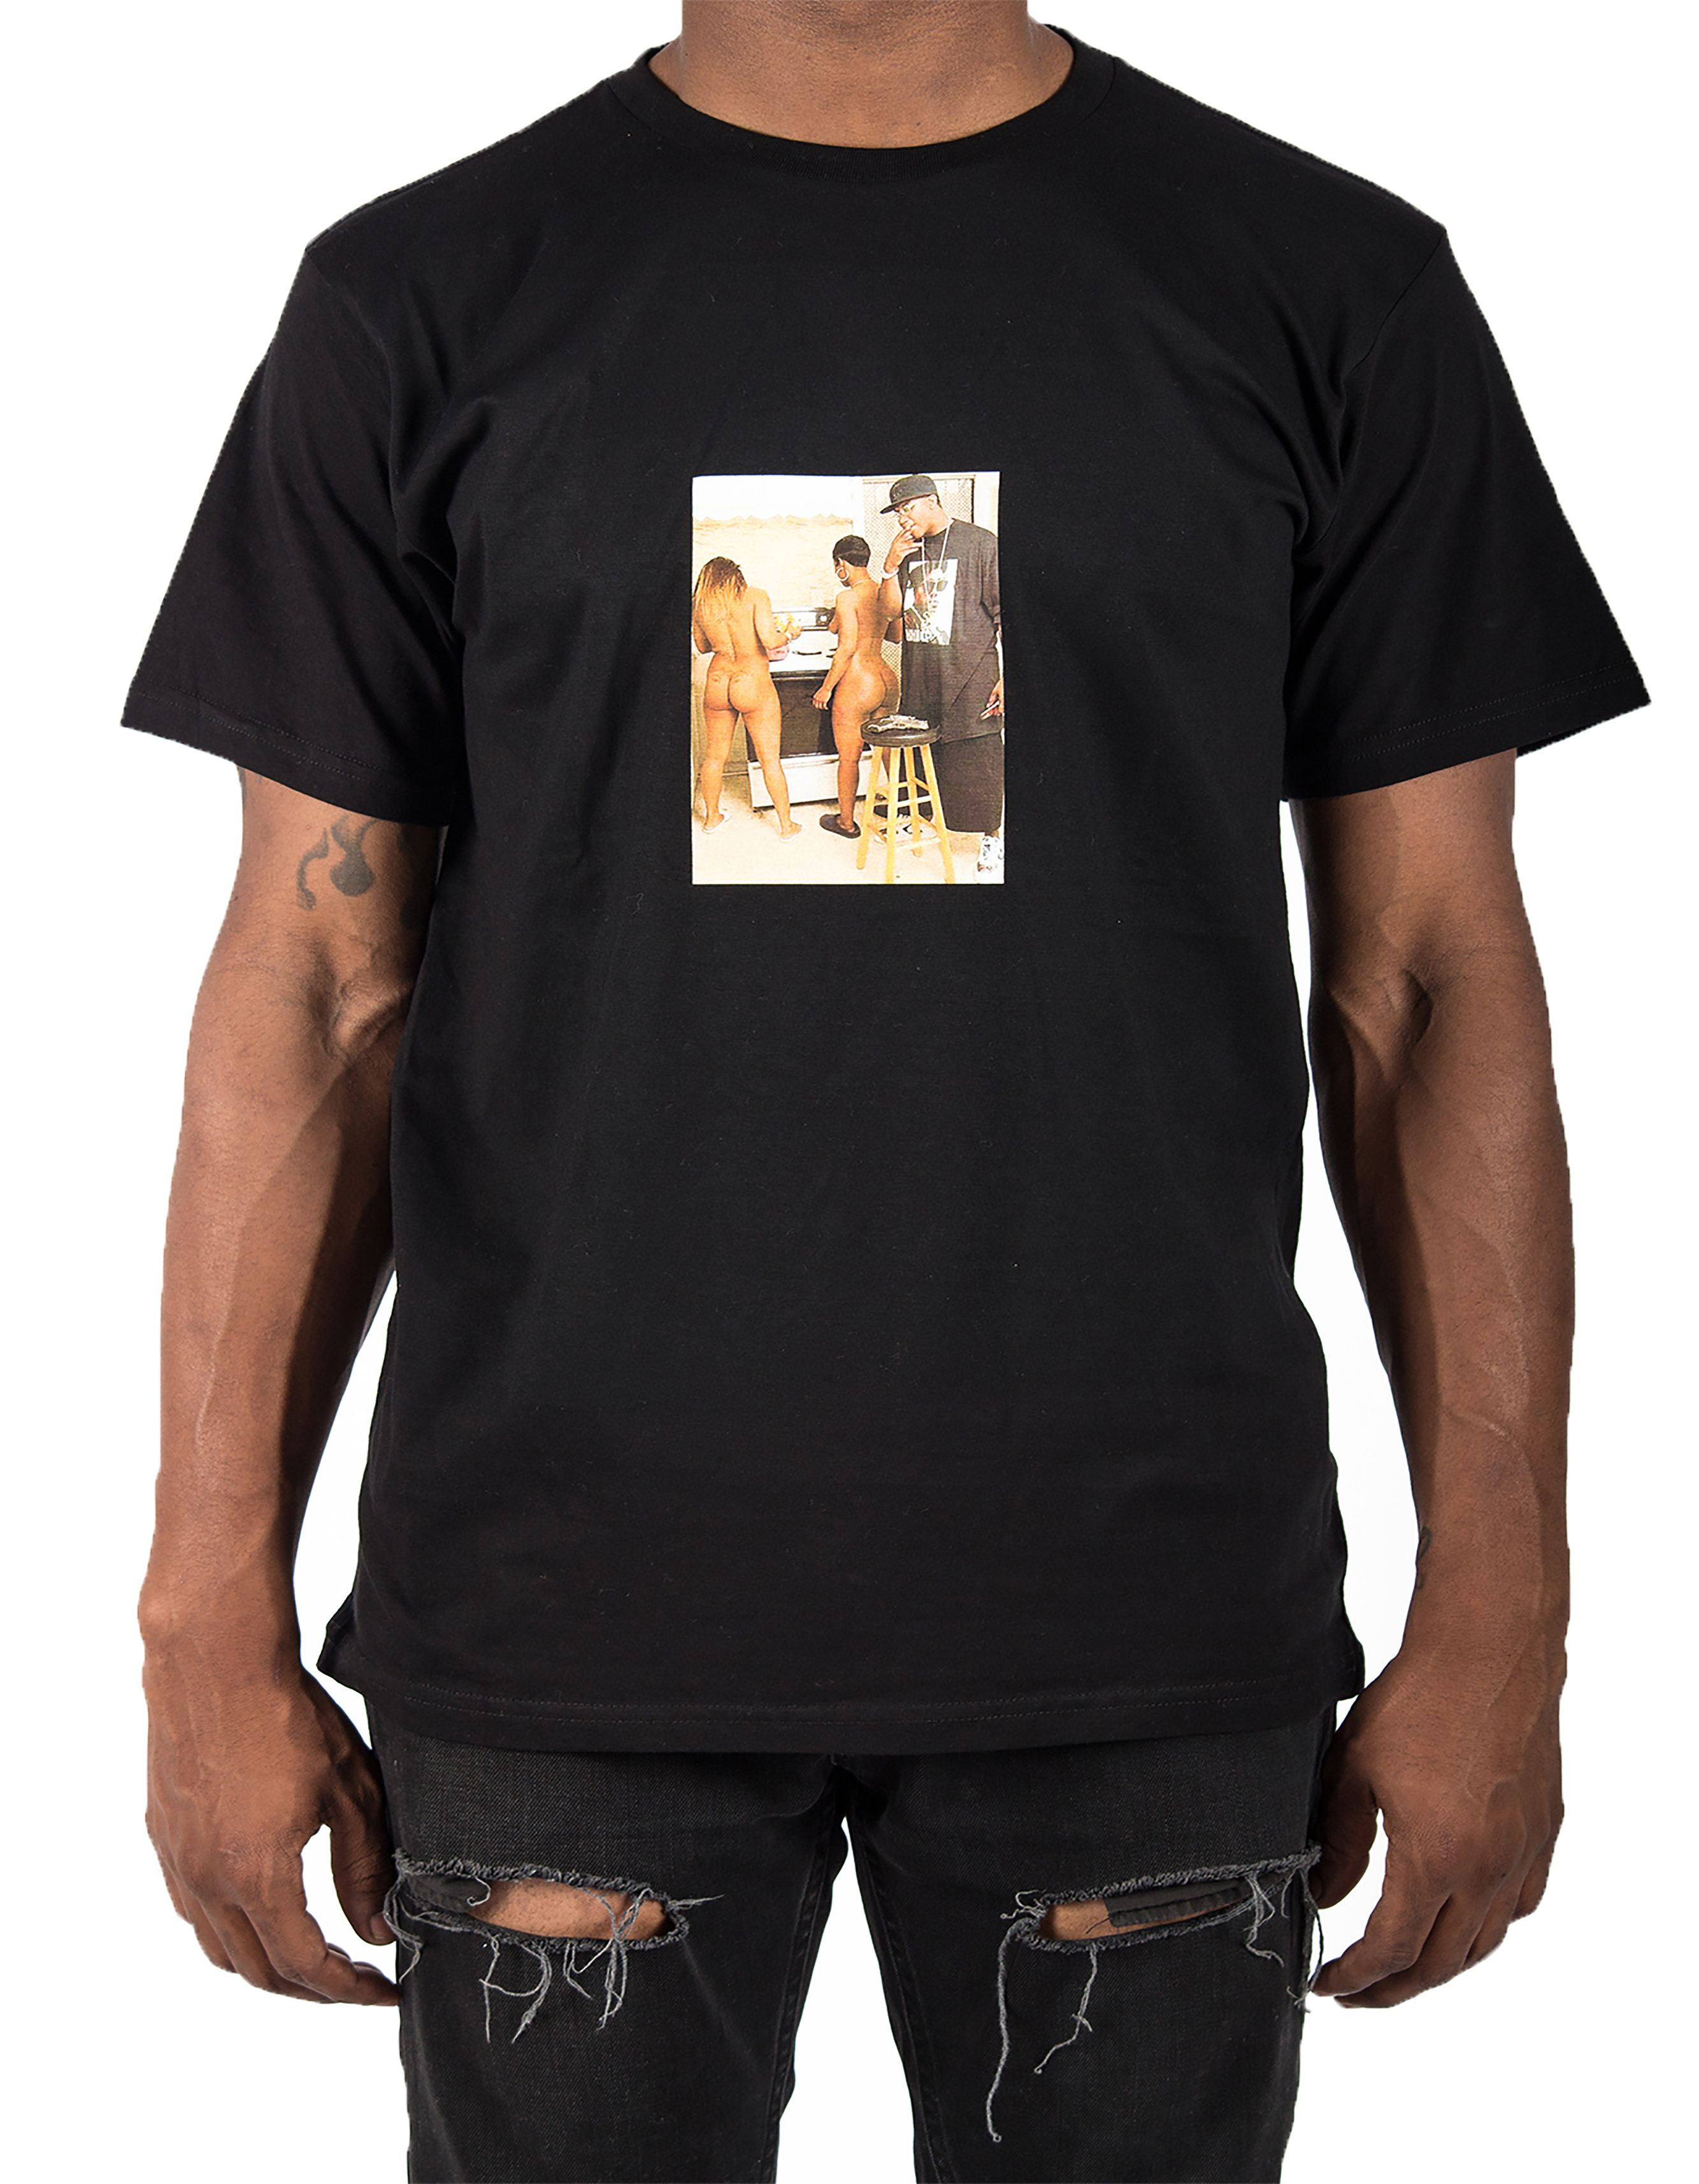 6d47f2aa26c5 TRAP HOUSE CLOTHING GUCCI TRAP HOUSE TEE SHOP NOW WWW.SHOPTRAPHOUSE.COM